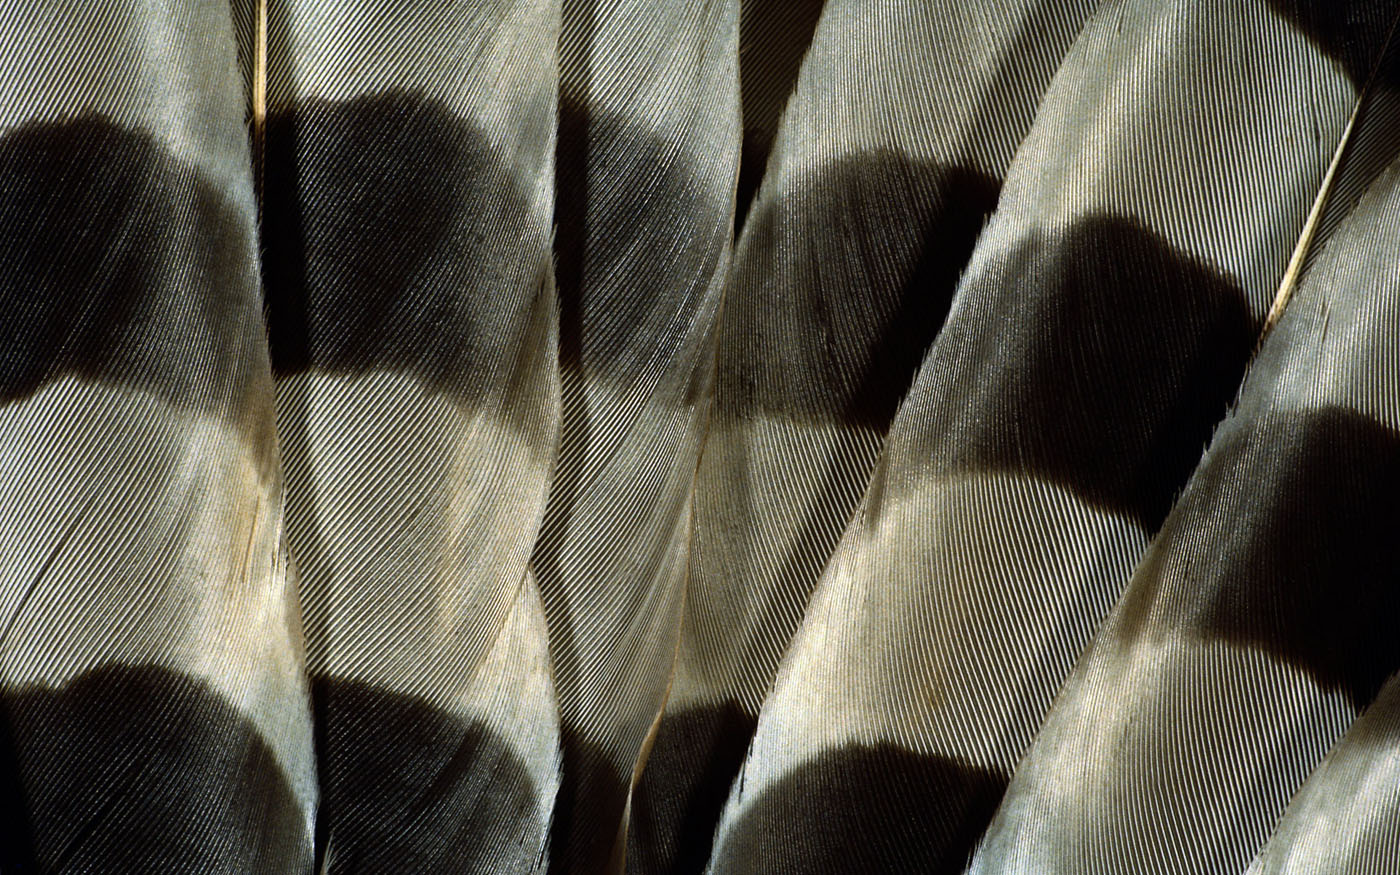 Feather wings close-up 29526